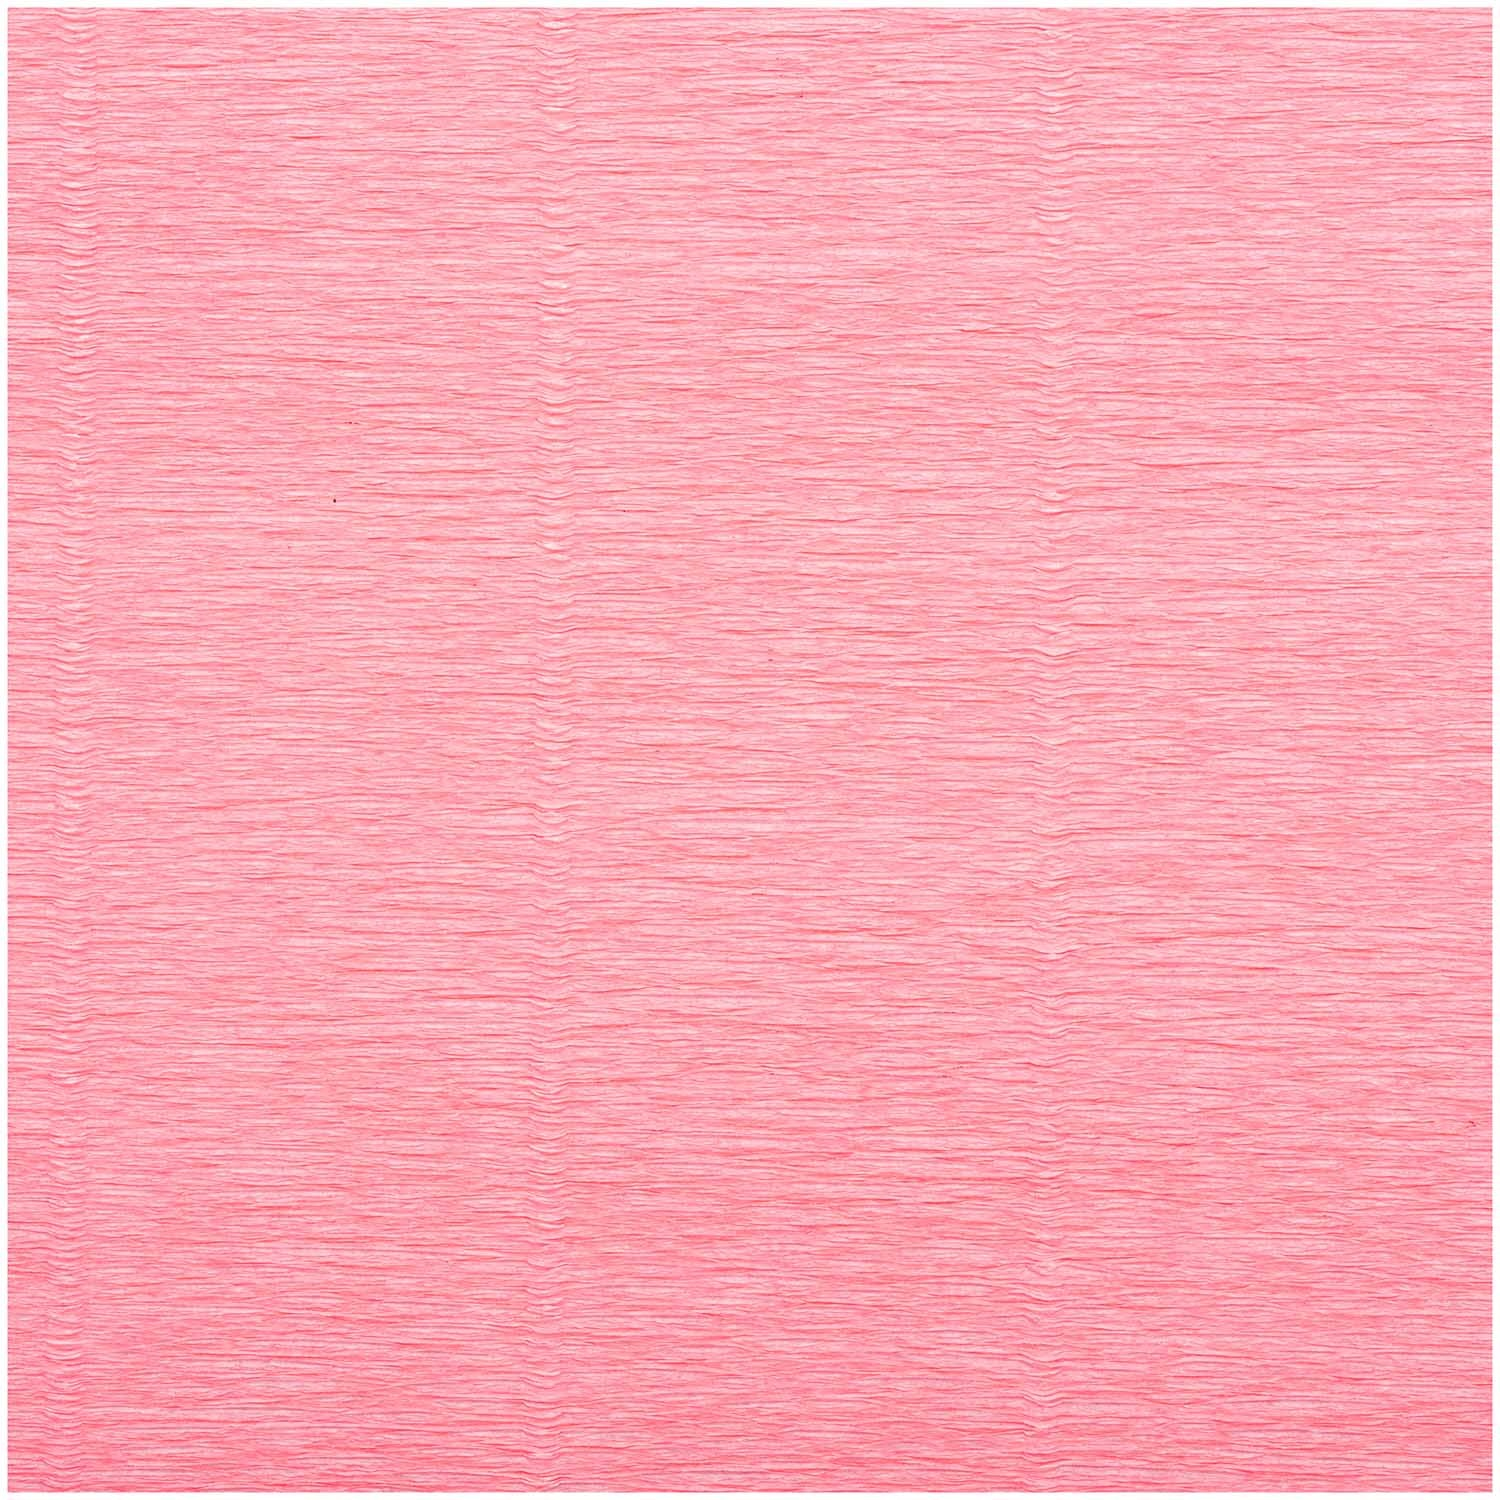 Rico NAY FLORIST CREPE 25X250, INS PINK